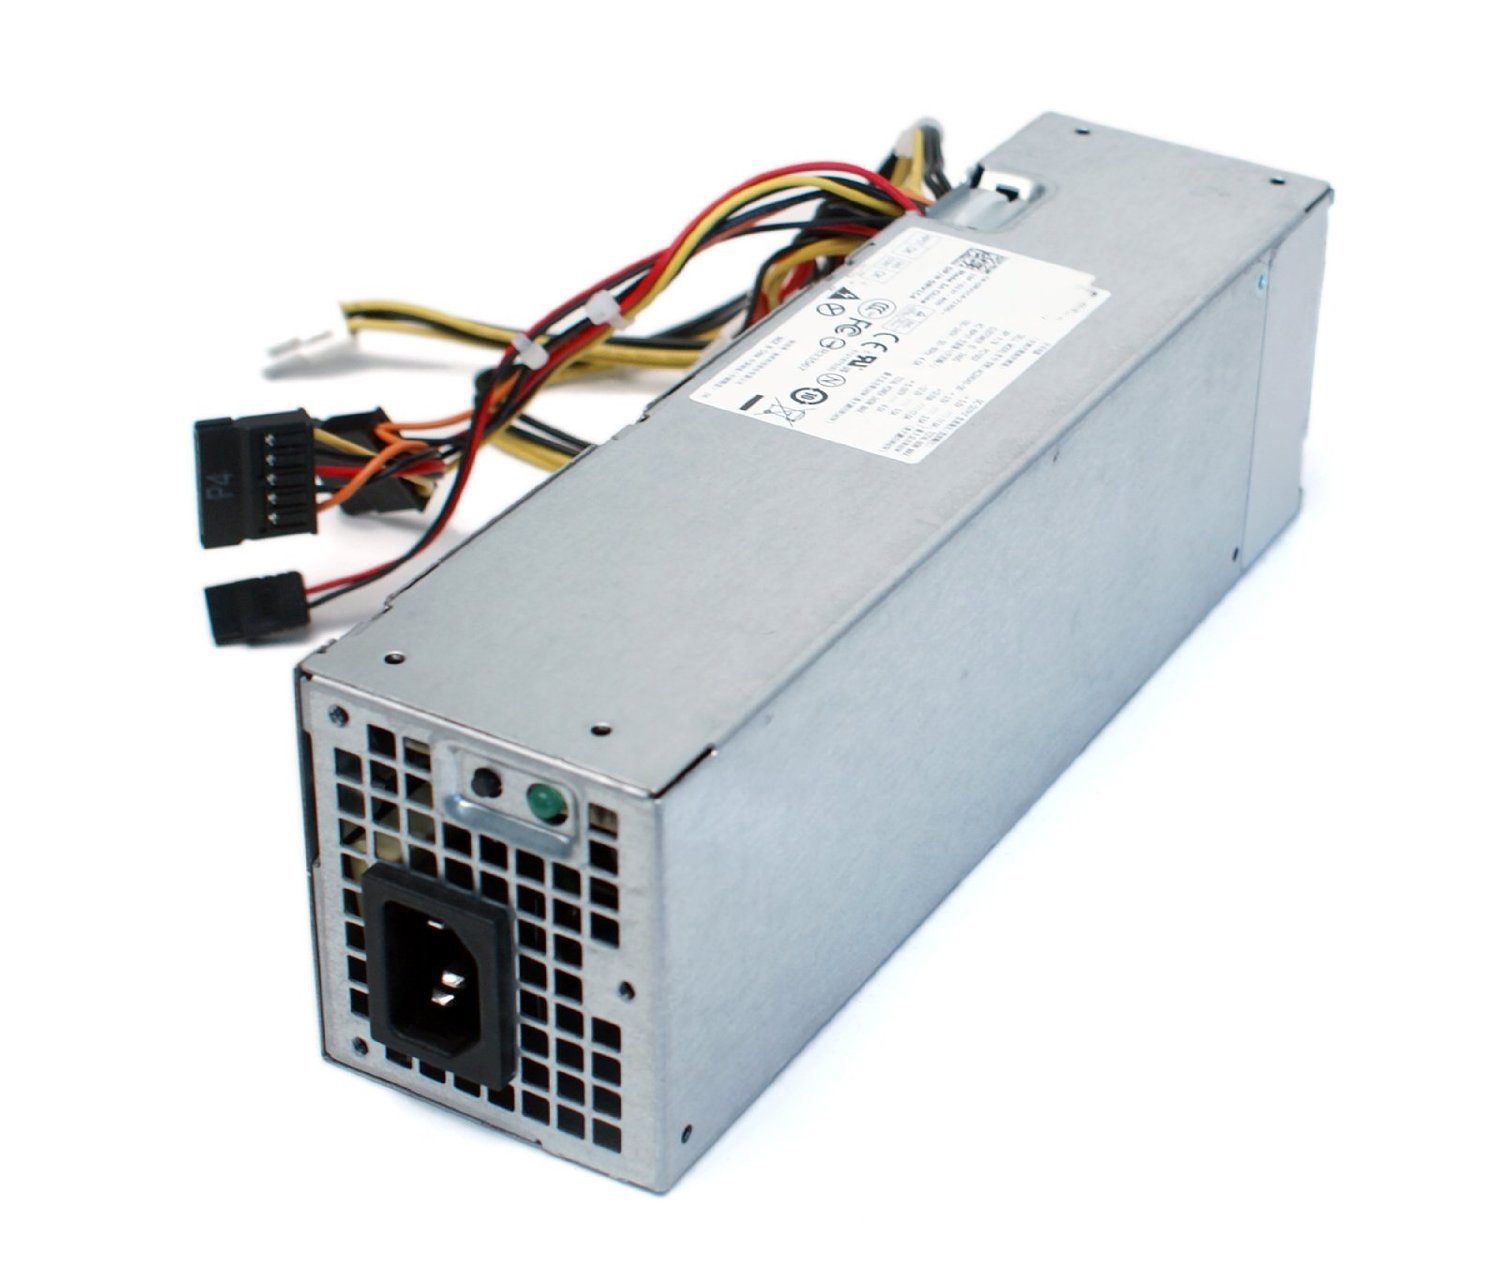 619KKJ5AZBL._SL1500_ amazon com power supply vmrd2 for dell optiplex 7010 9010 gx790  at cos-gaming.co